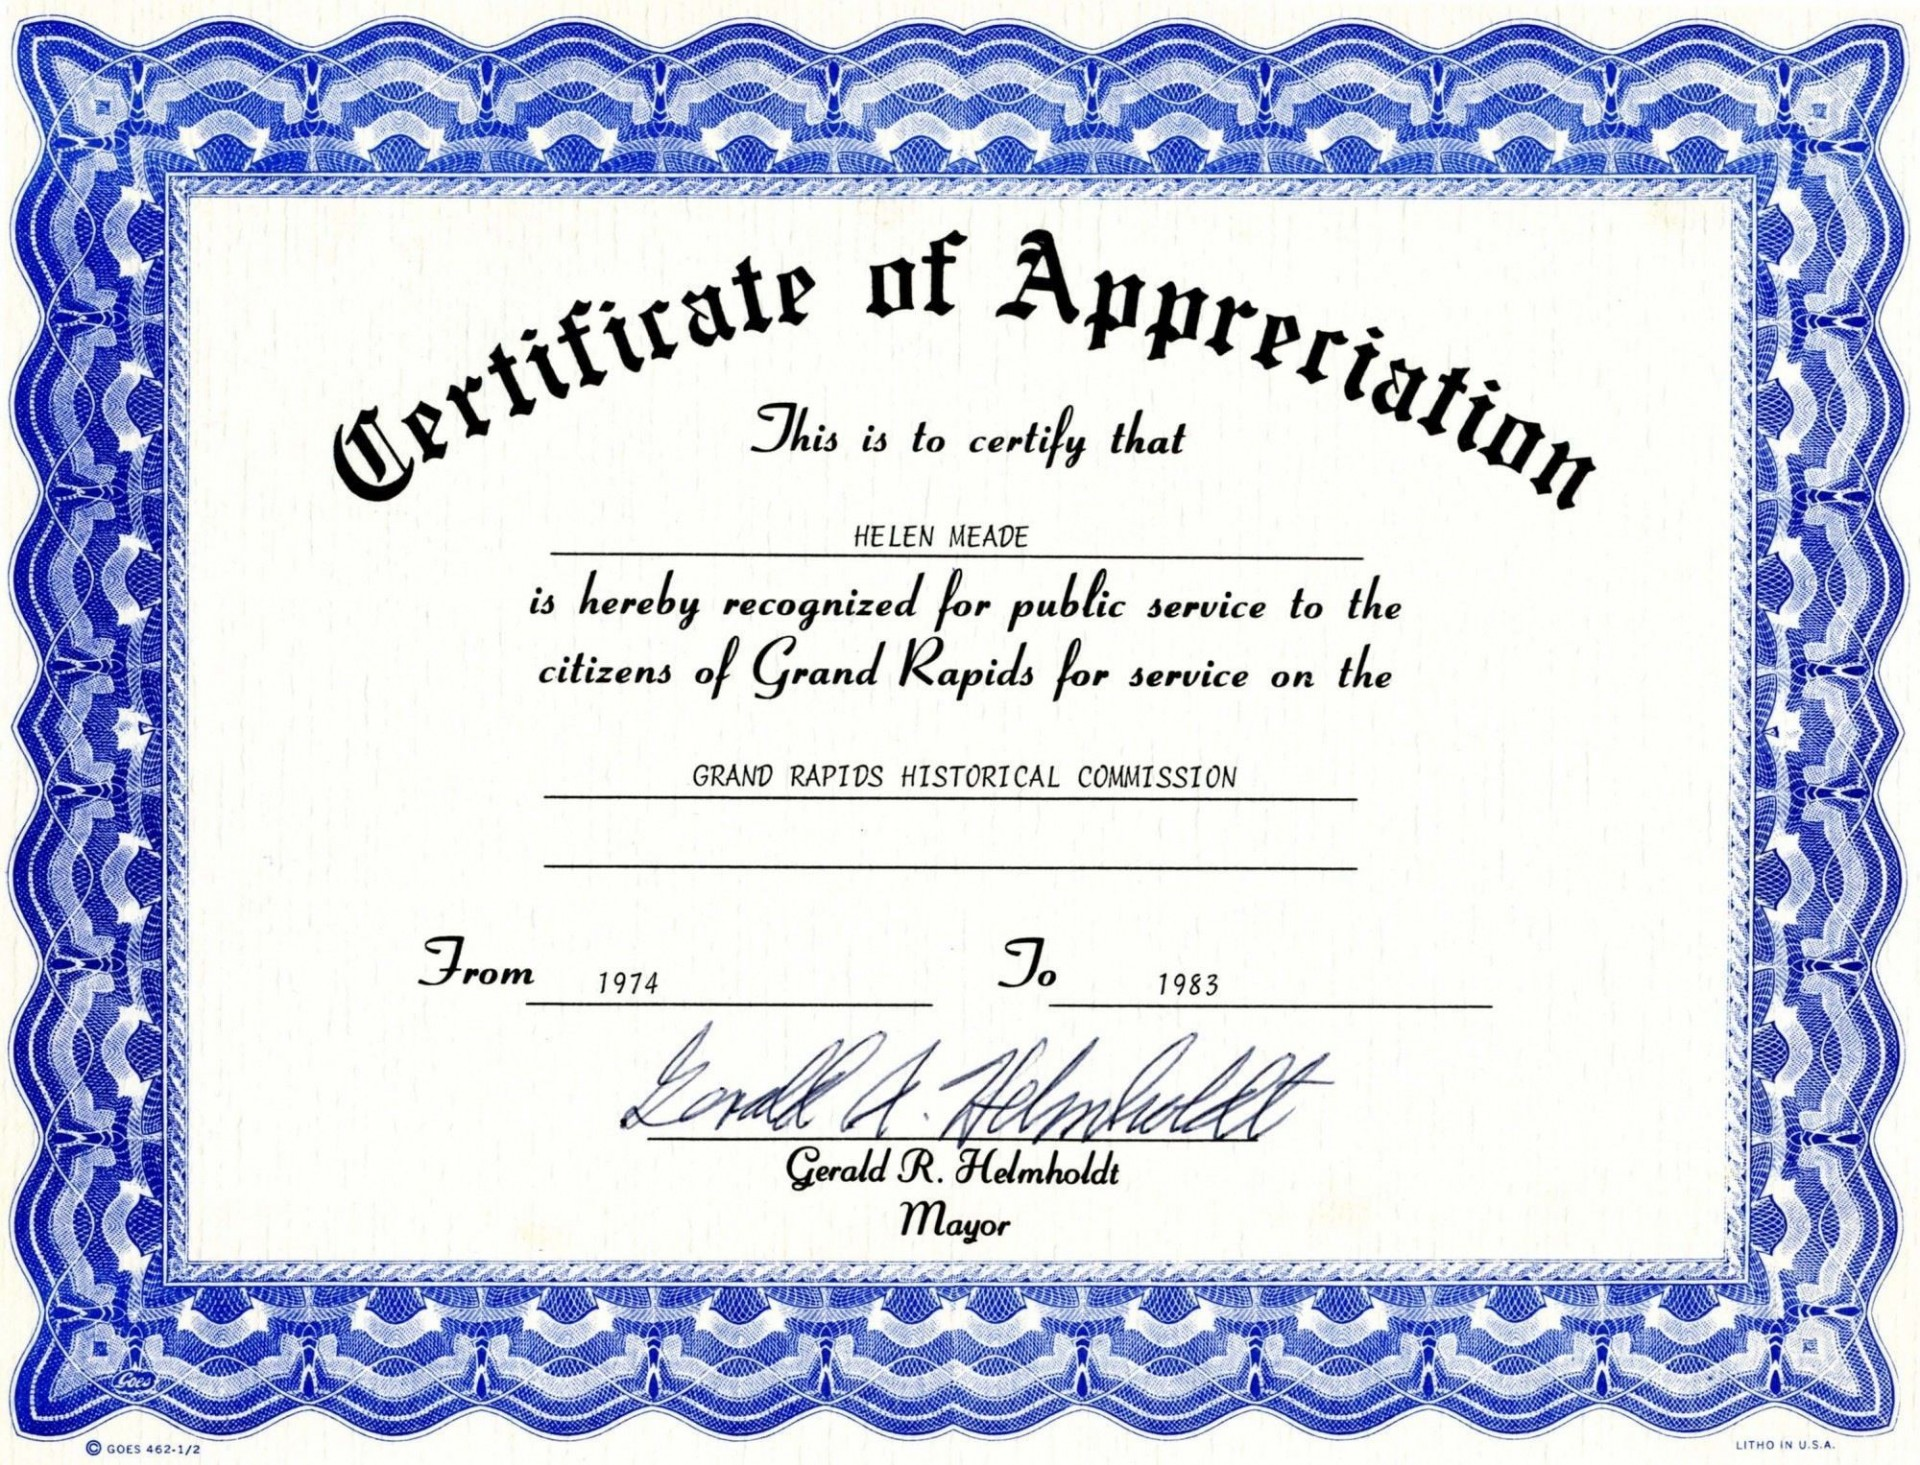 008 Simple Free Certificate Template Microsoft Word Design  Of Authenticity Art Puppy Birth Marriage1920